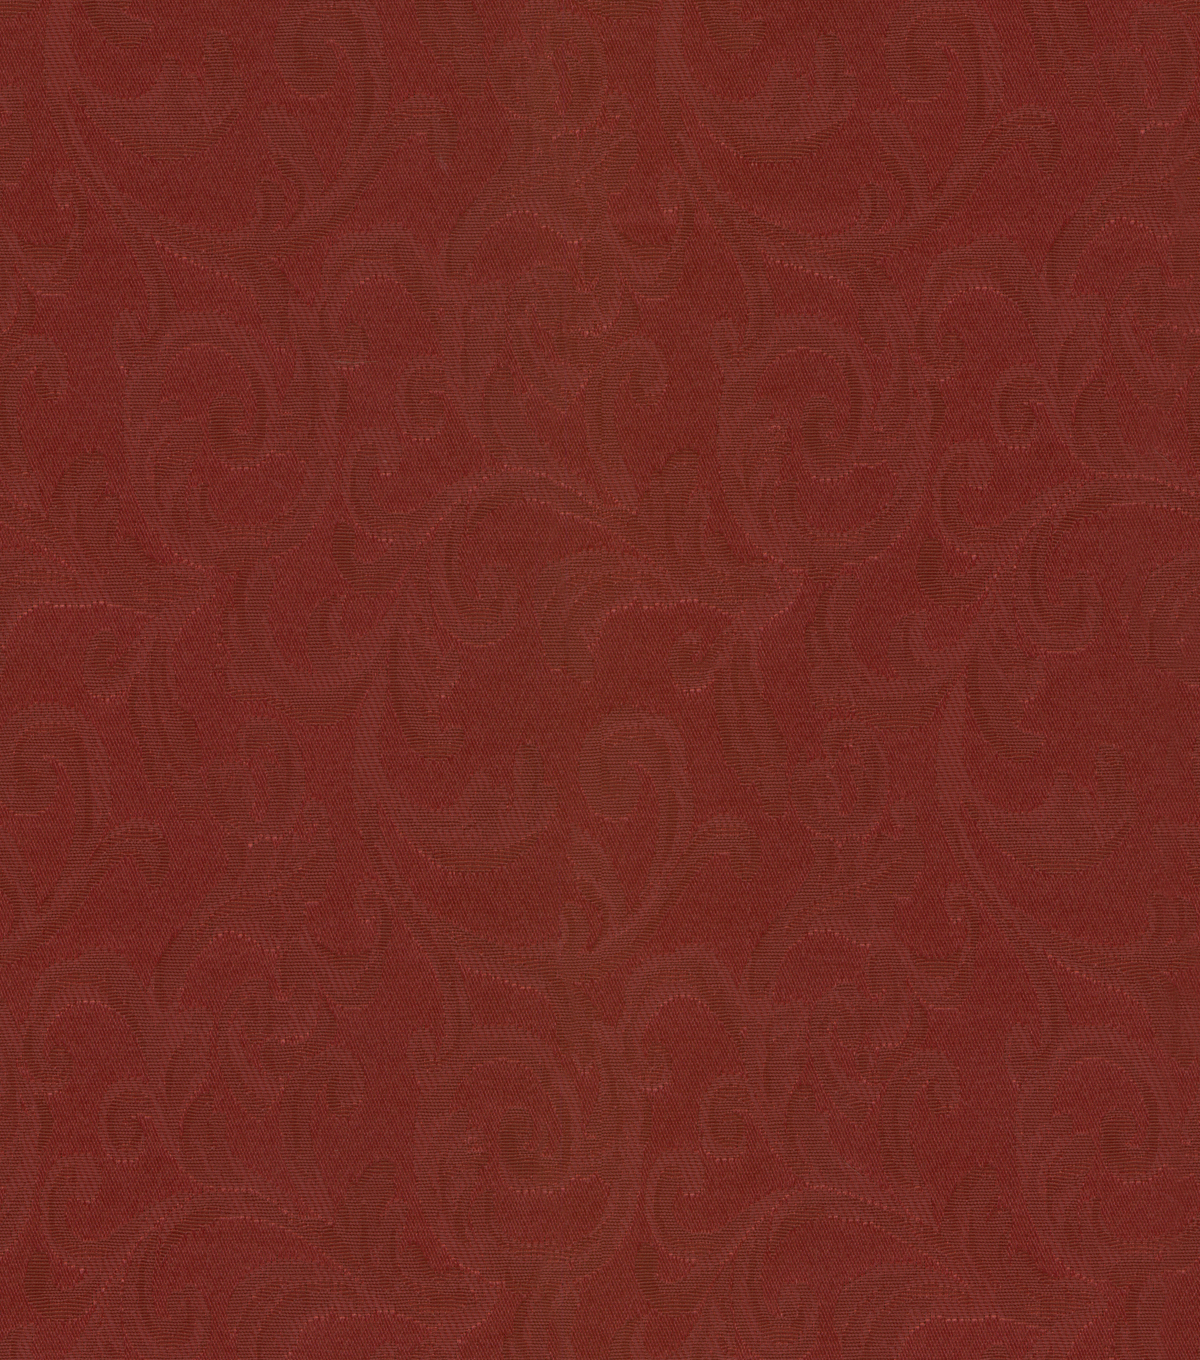 Signature Series Home Decor Solid Fabric Prospect-Burgundy